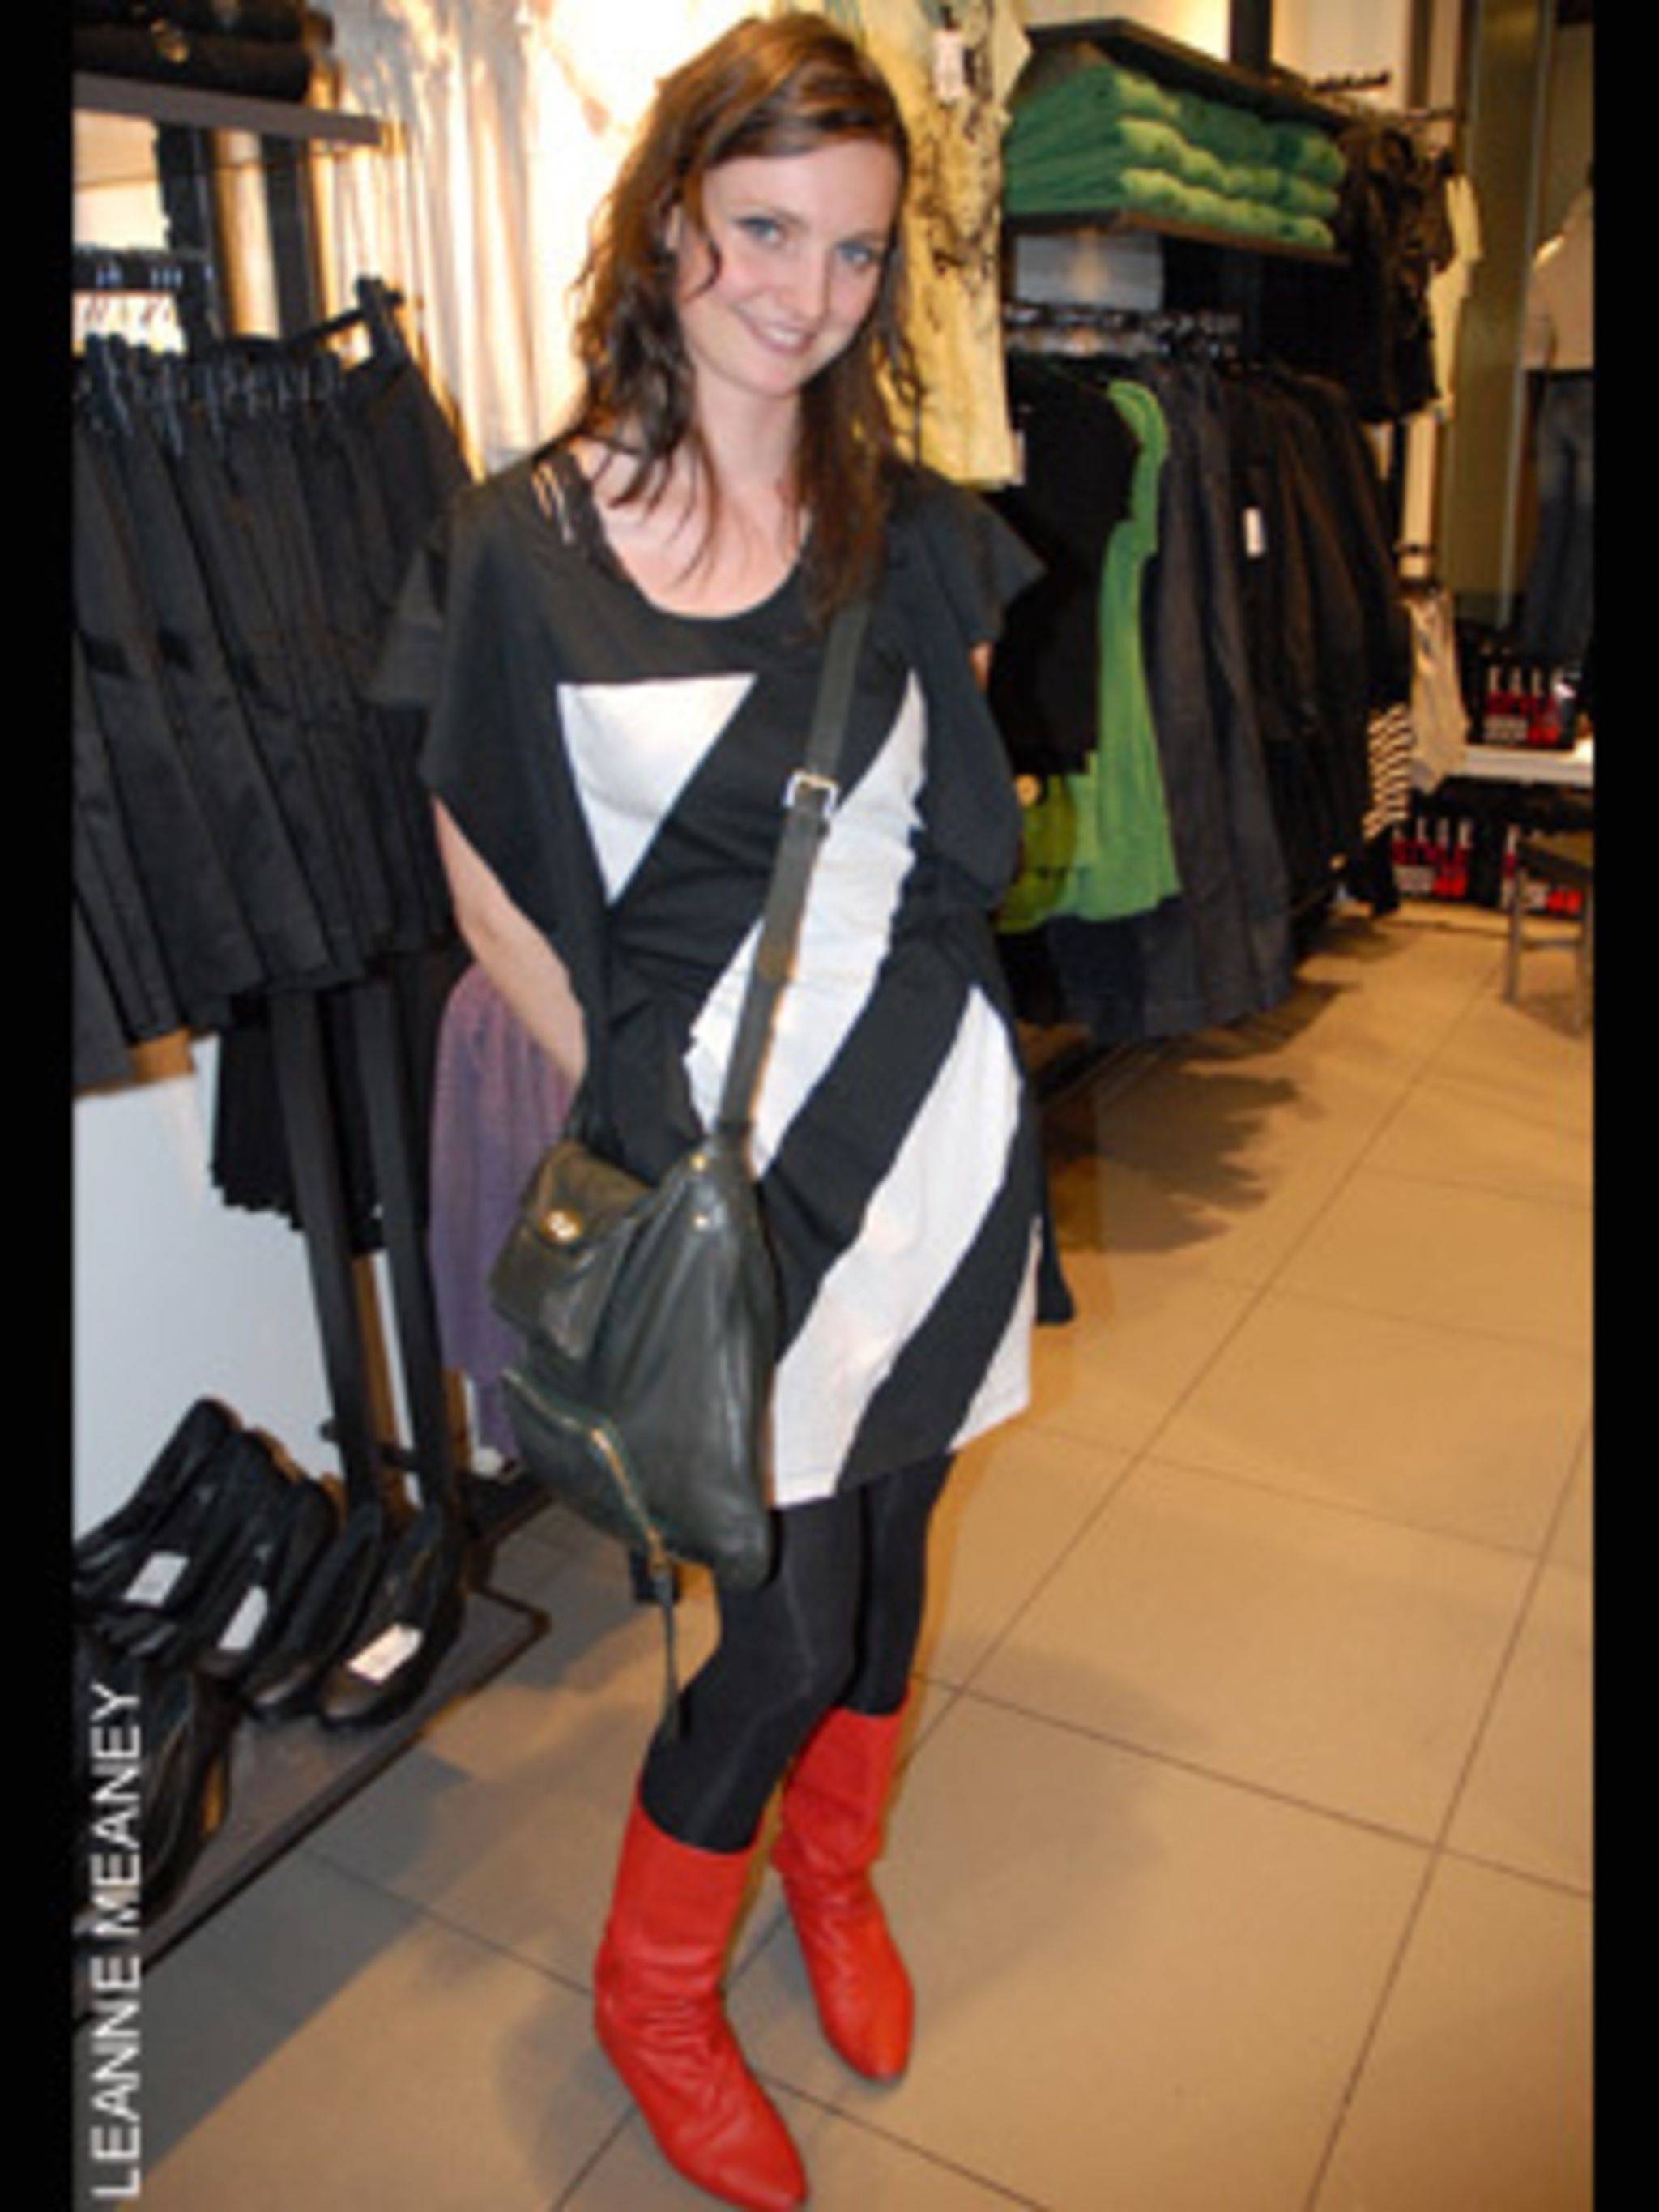 <p><strong>Laura, 25, from London</strong><strong>Works in PR</strong><strong>Style icon - Courtney Love (pre plastic surgery)</strong>Dress - Eley KishimotoBoots - OfficeBag - Mulberry</p>